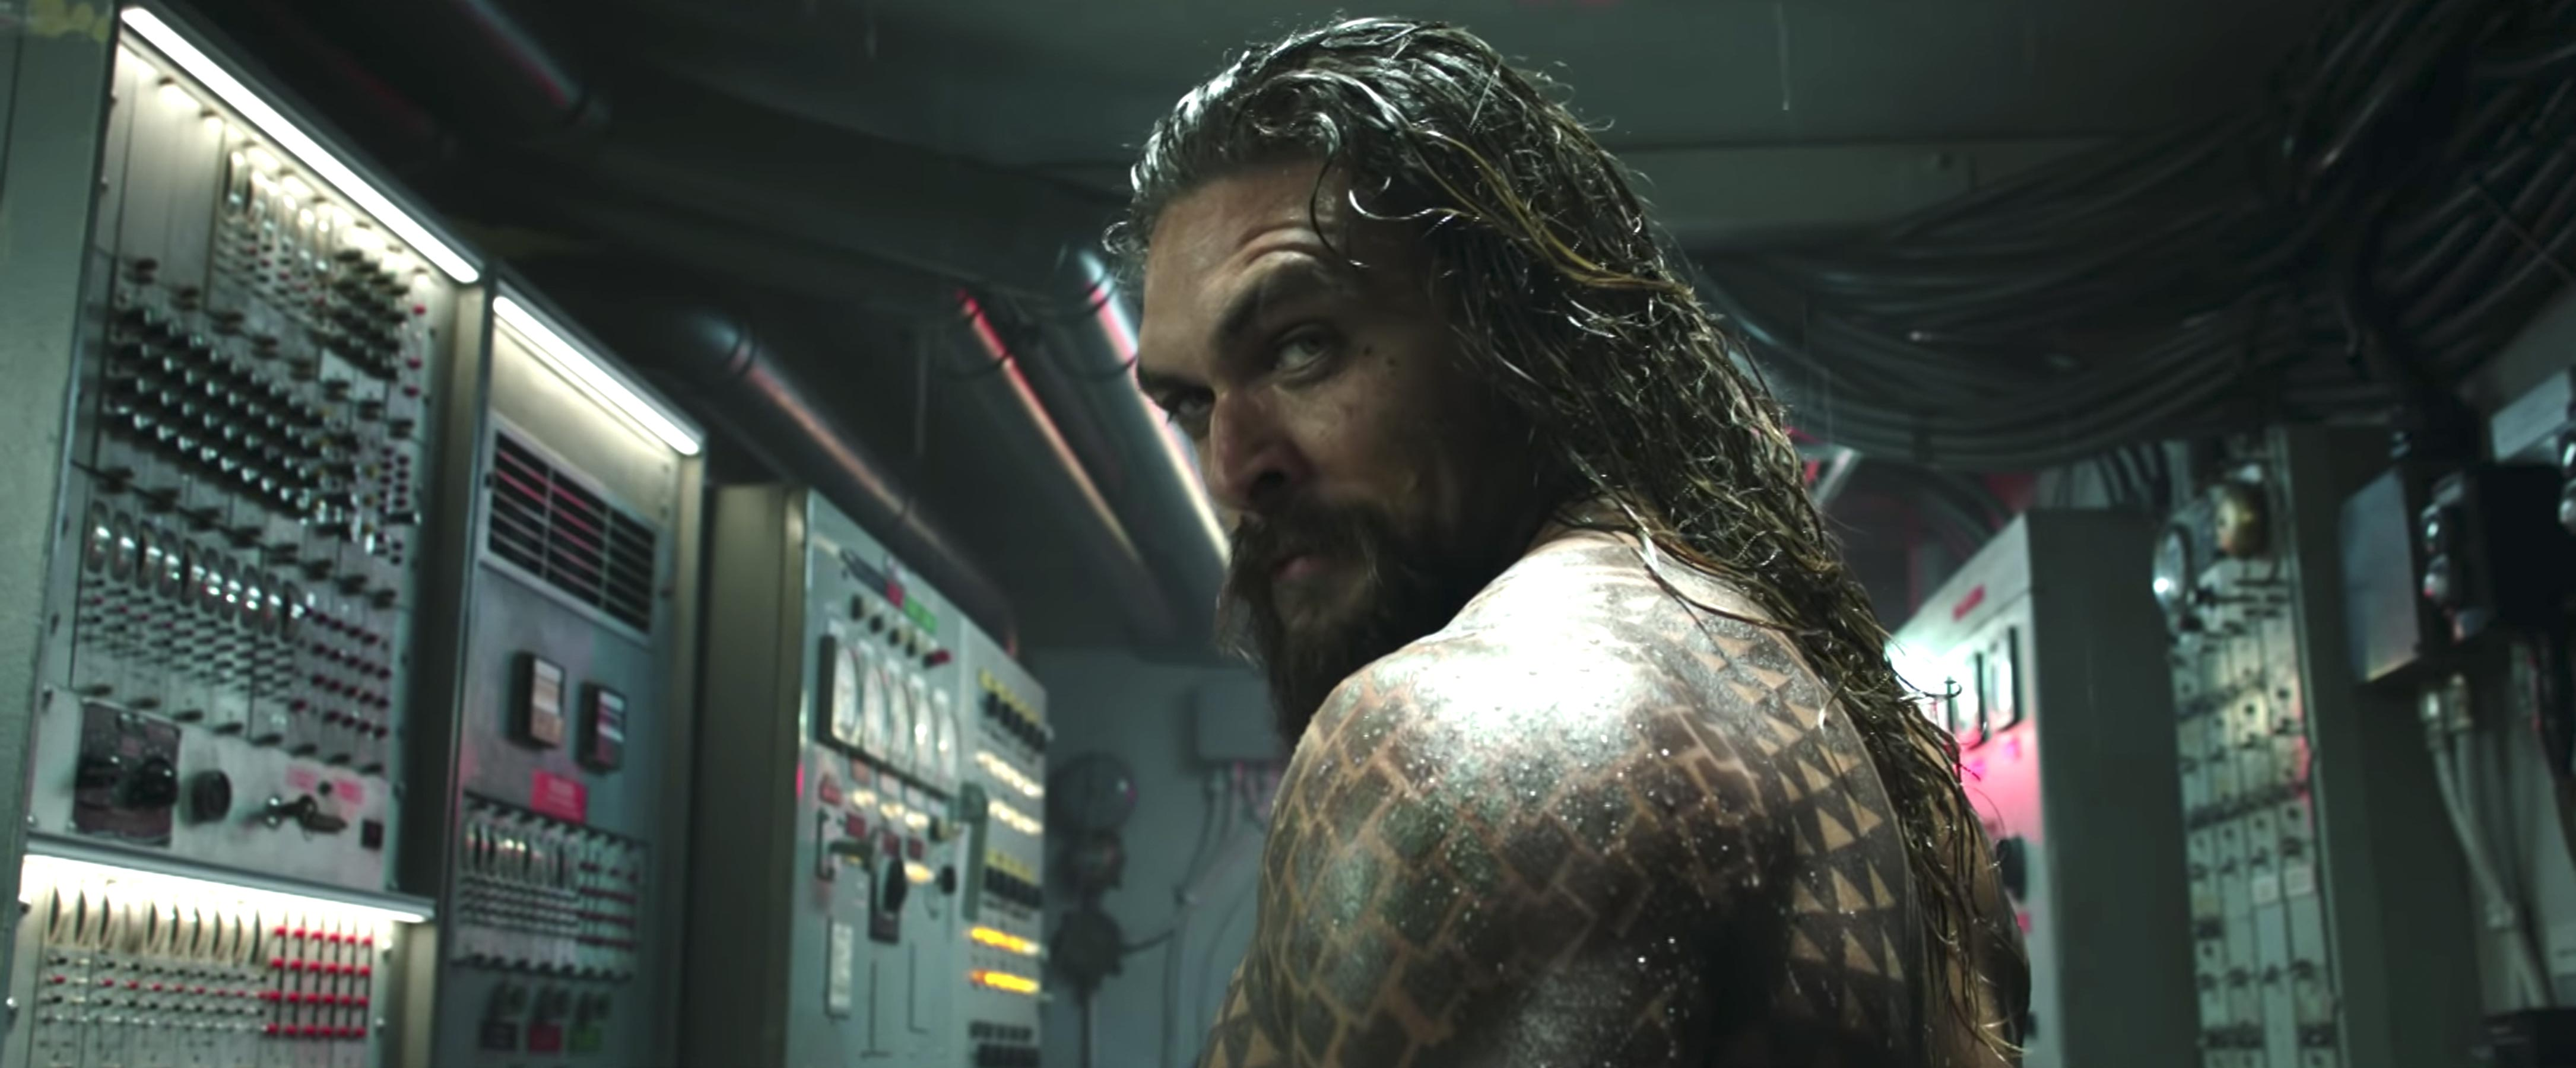 comic-con 2018 aquaman